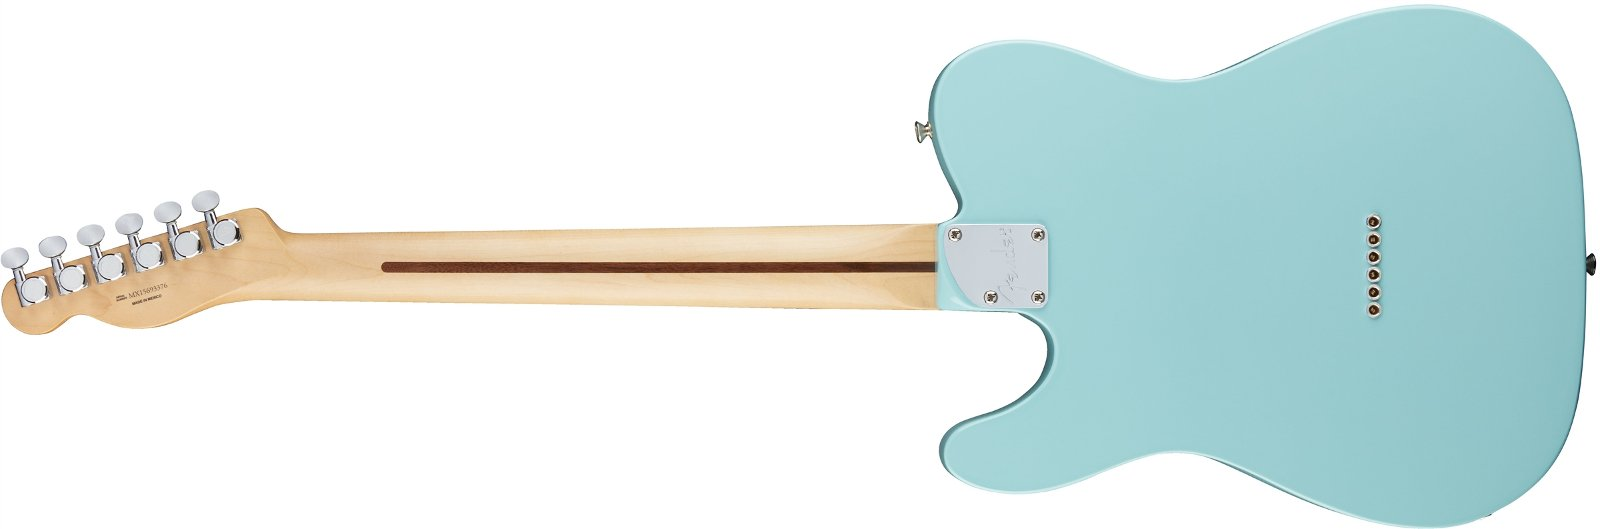 Electric Guitar with Daphne Blue Finish